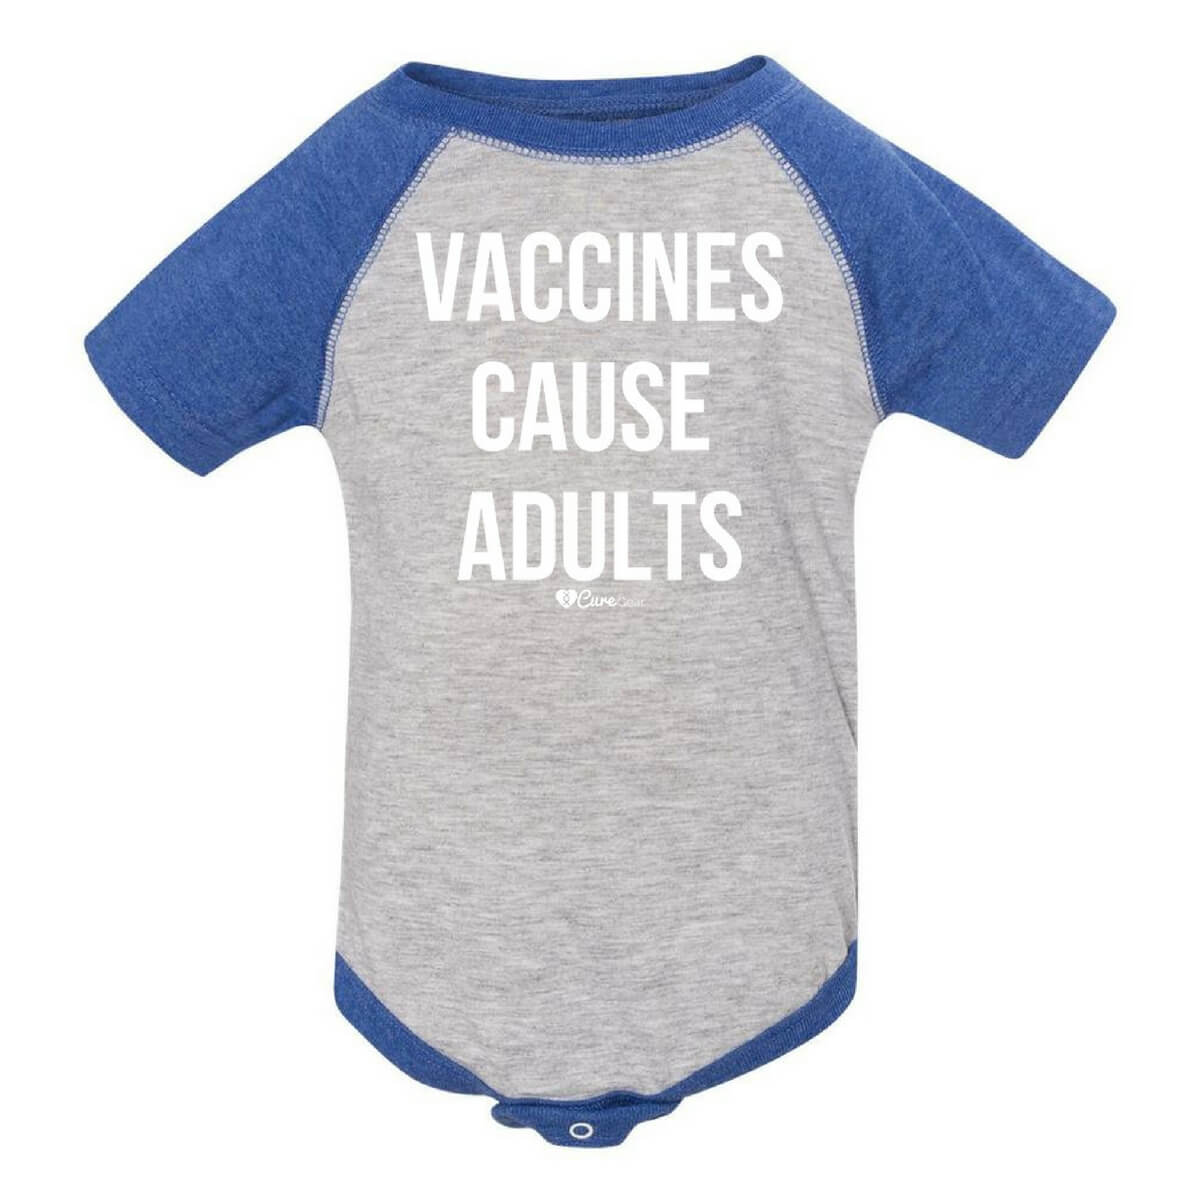 Vaccines Cause Adults Baby Onesie